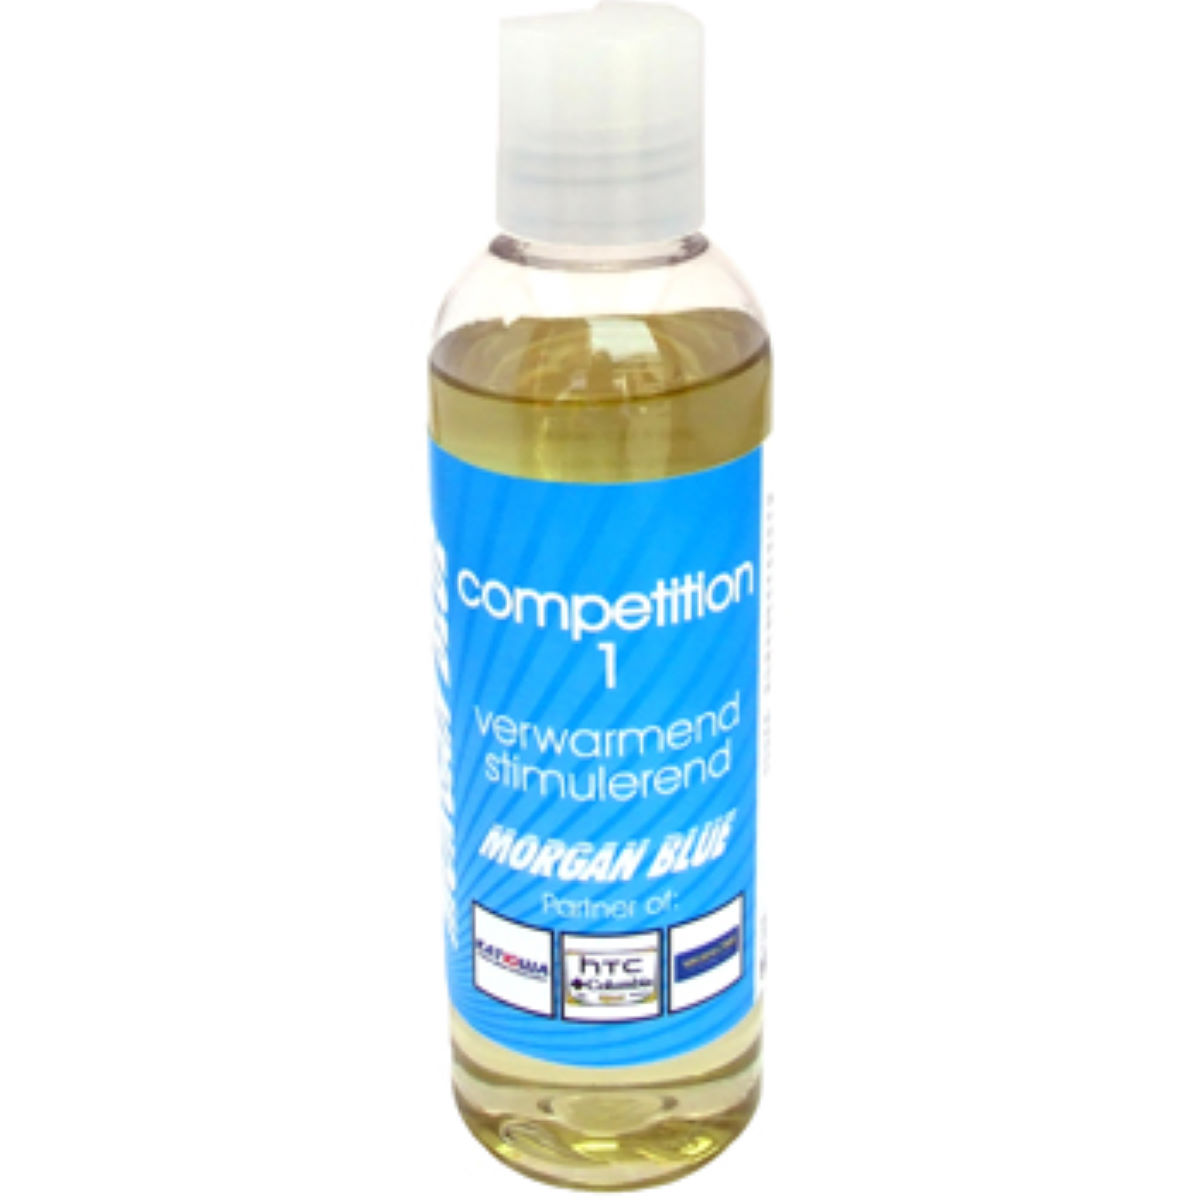 Morgan Blue Competition 1 Pre-Race Oil - 200ml Bottle